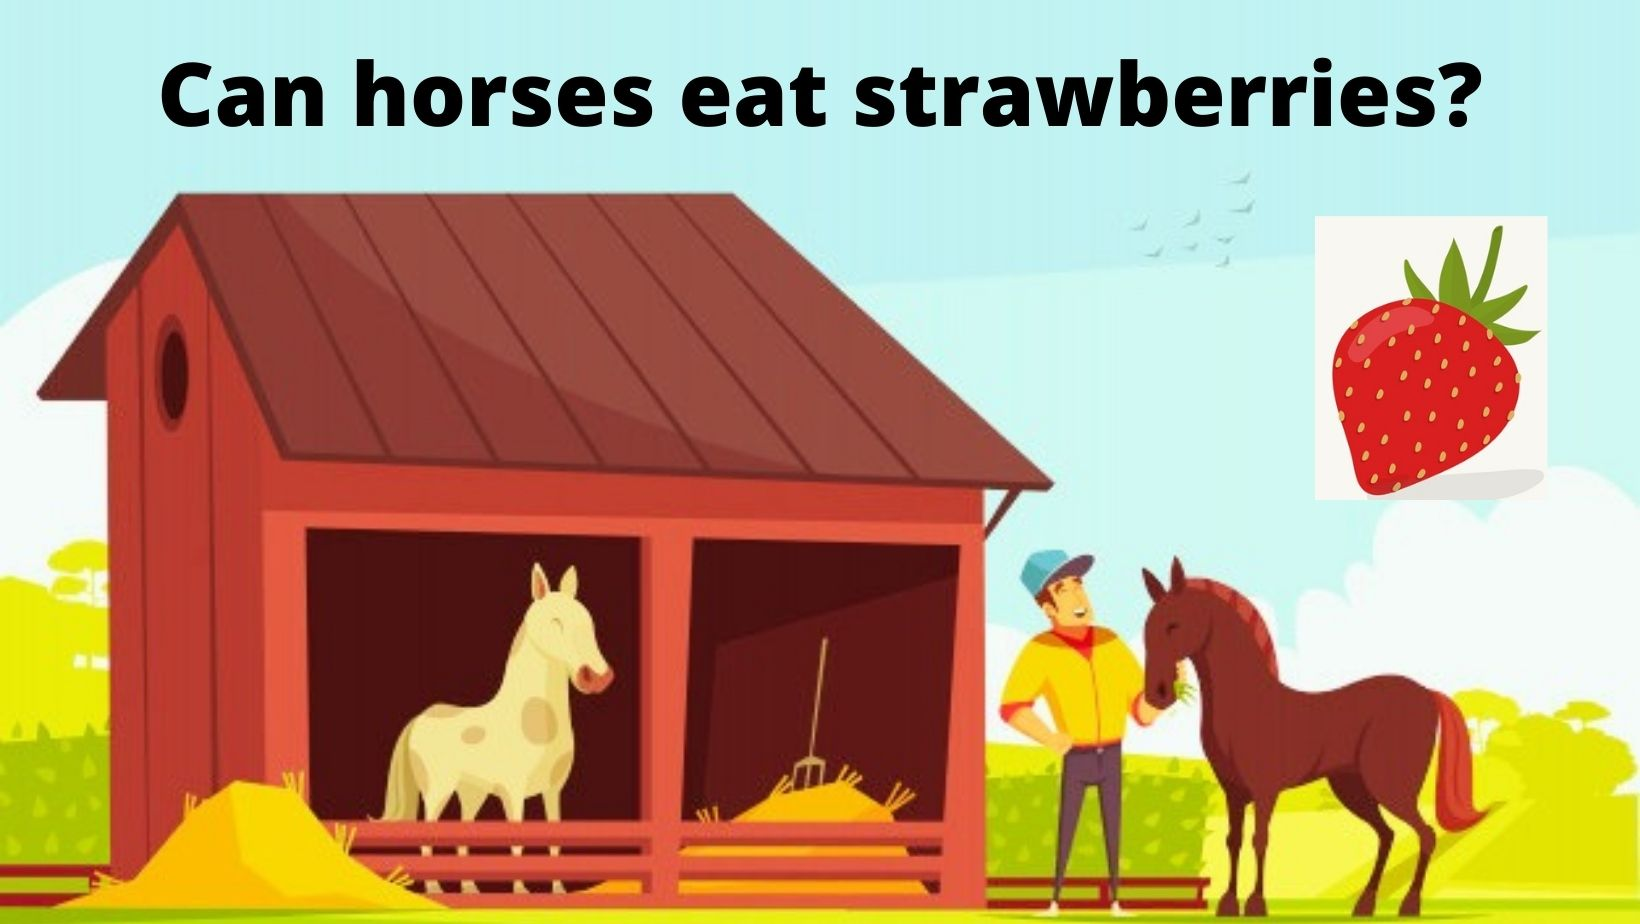 Can horses eat strawberries